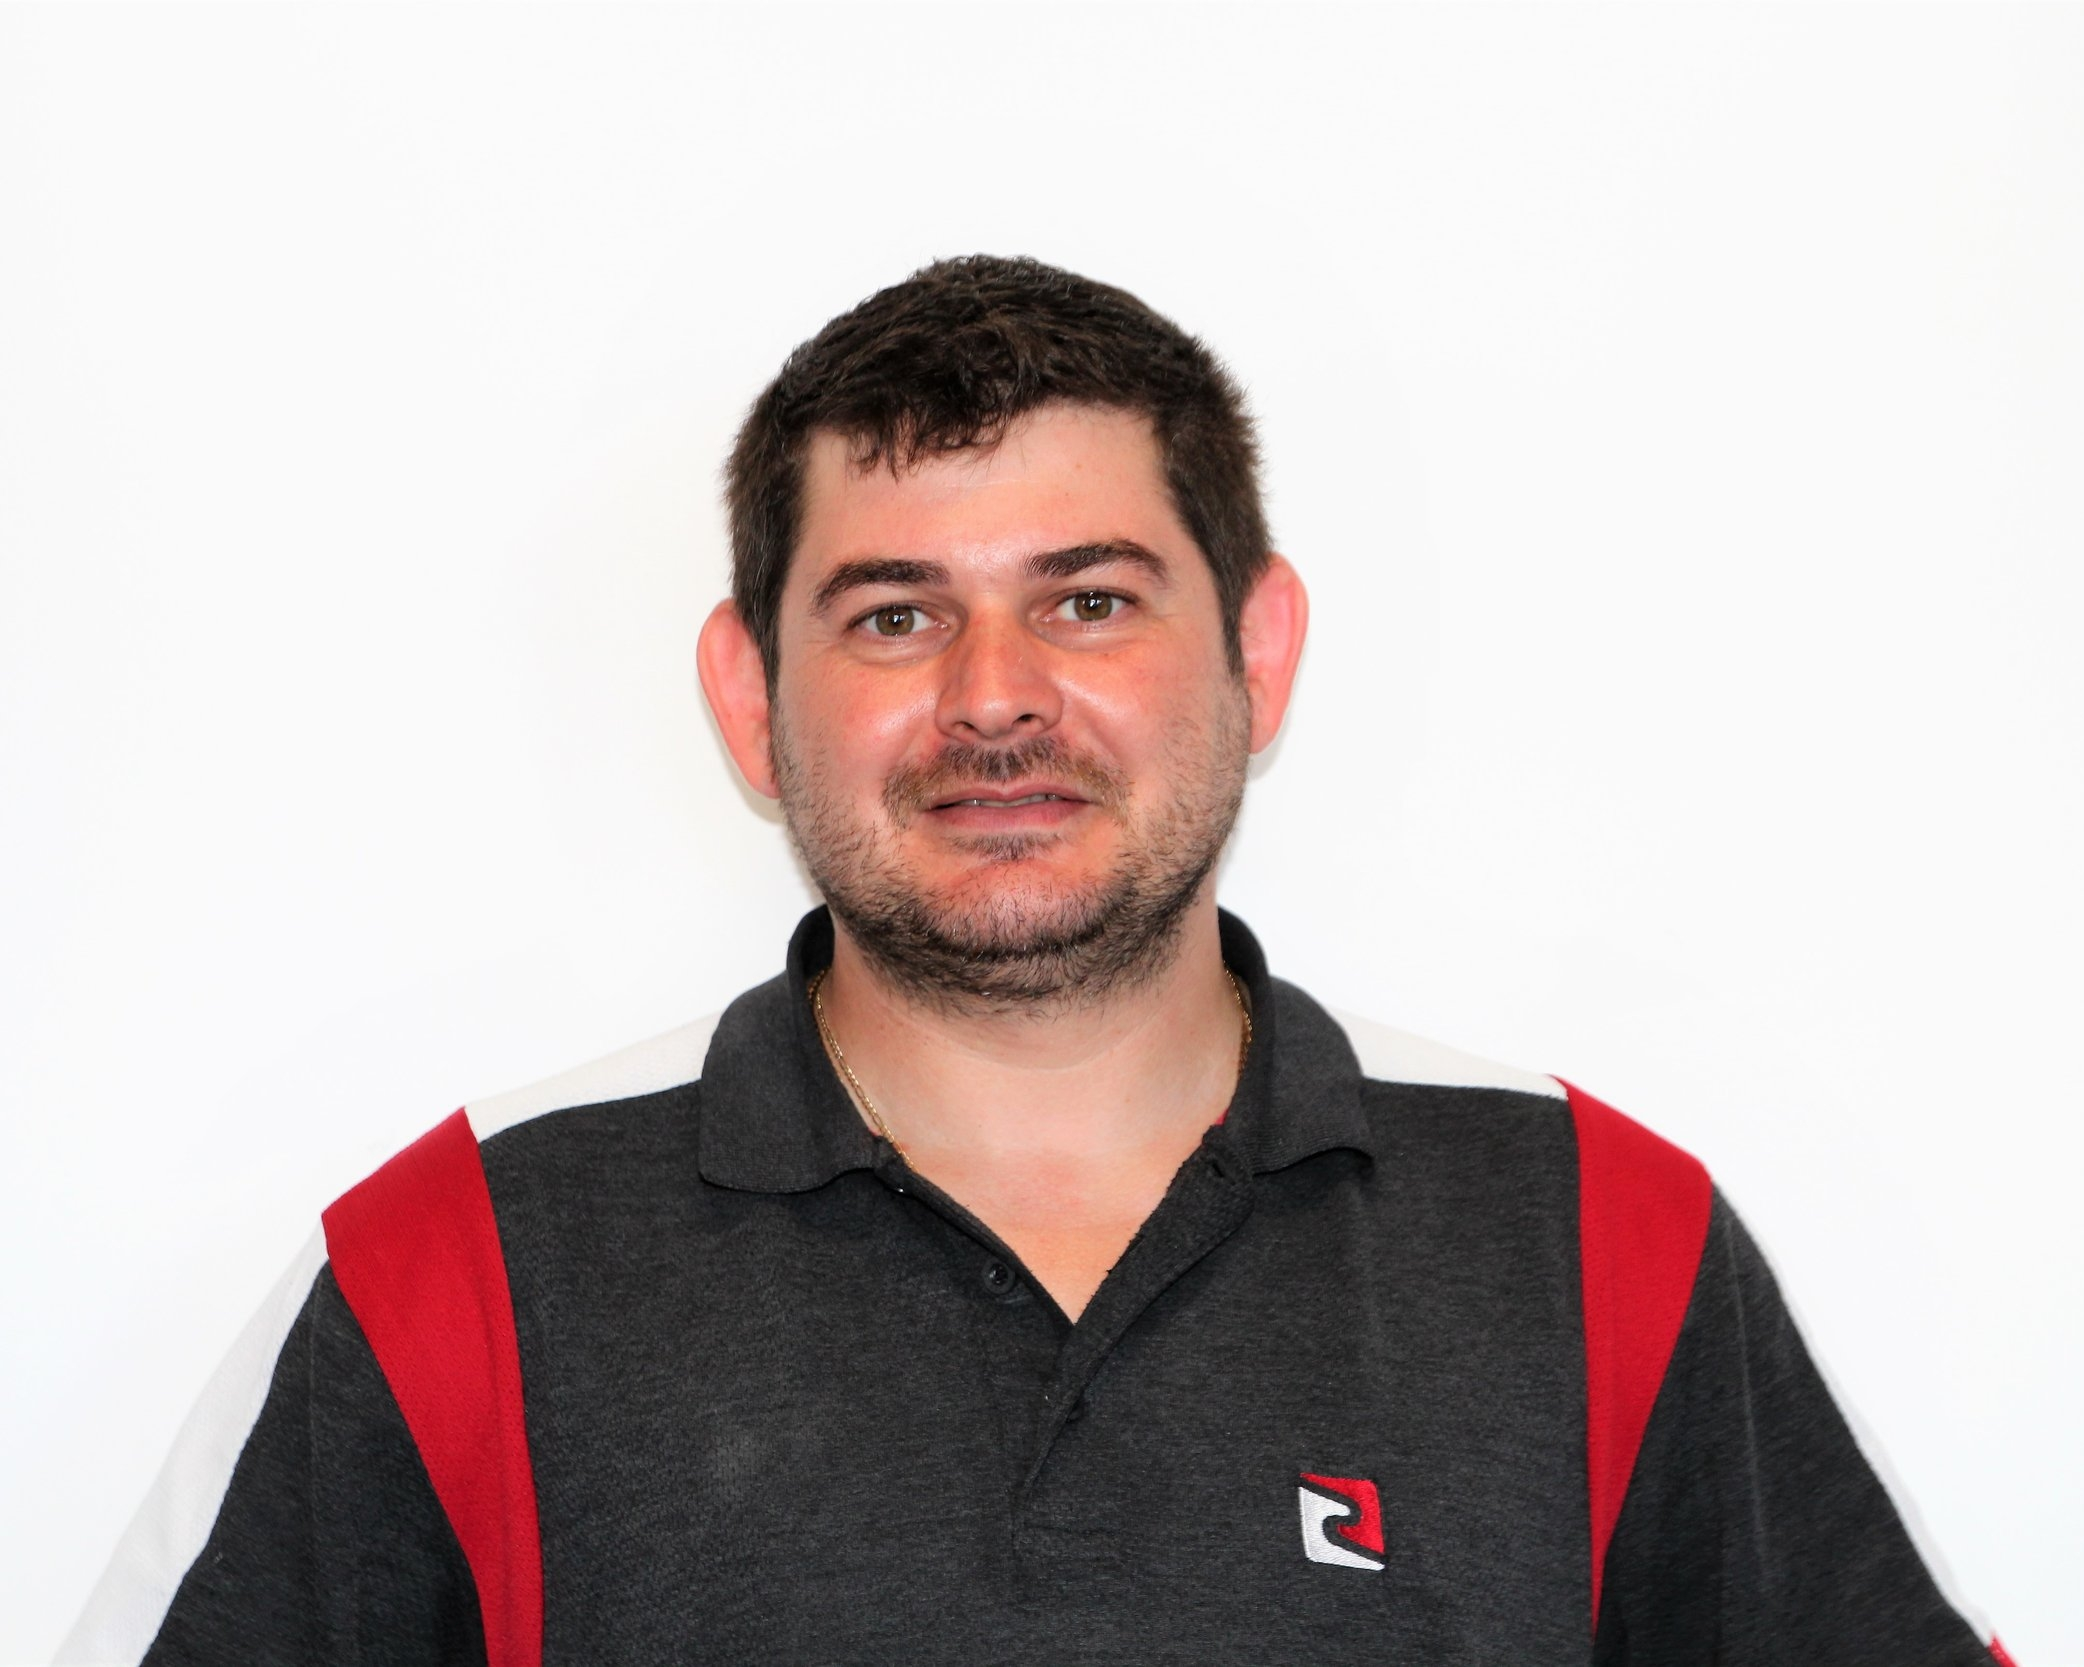 Anatoly Nudelis - Embedded Cabling EngineerExpertise: cabling and electricalAnatoly has been working with YMtech for the last 6 years providing professional cabling and electrical solutions.He is a registered electrical contractor and ACRS master cabler.Anatoly installs communication cabinets, patch panels, access points, security alarms, access control and UPS solutions.